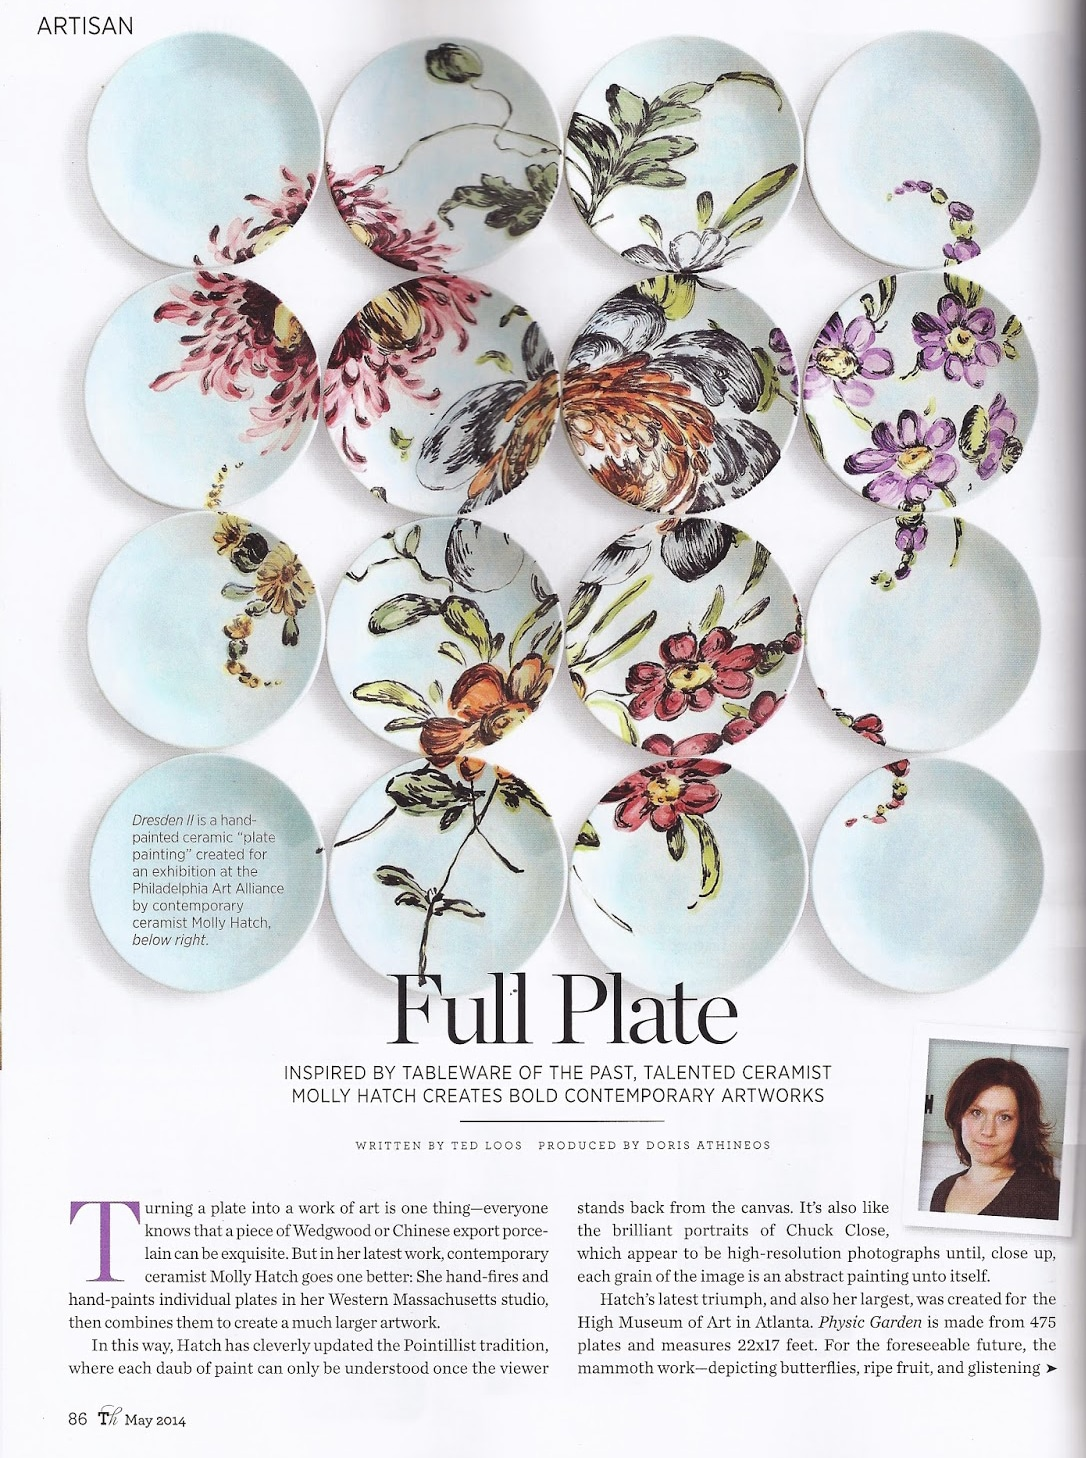 """Dresden II is a hand-painted ceramic """"plate painting"""" created for an exhibition at the Philadelphia Art Alliance by contemporary ceramist Molly Hatch, below right."""